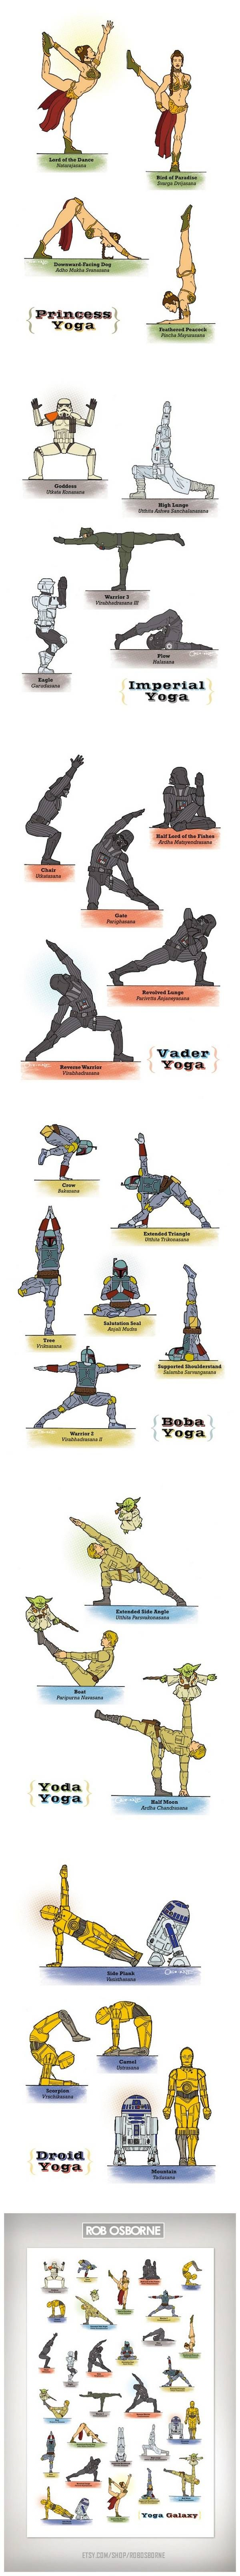 Silly? Absolutely. But you better believe my yoga positions will be coming from this diagram right here.